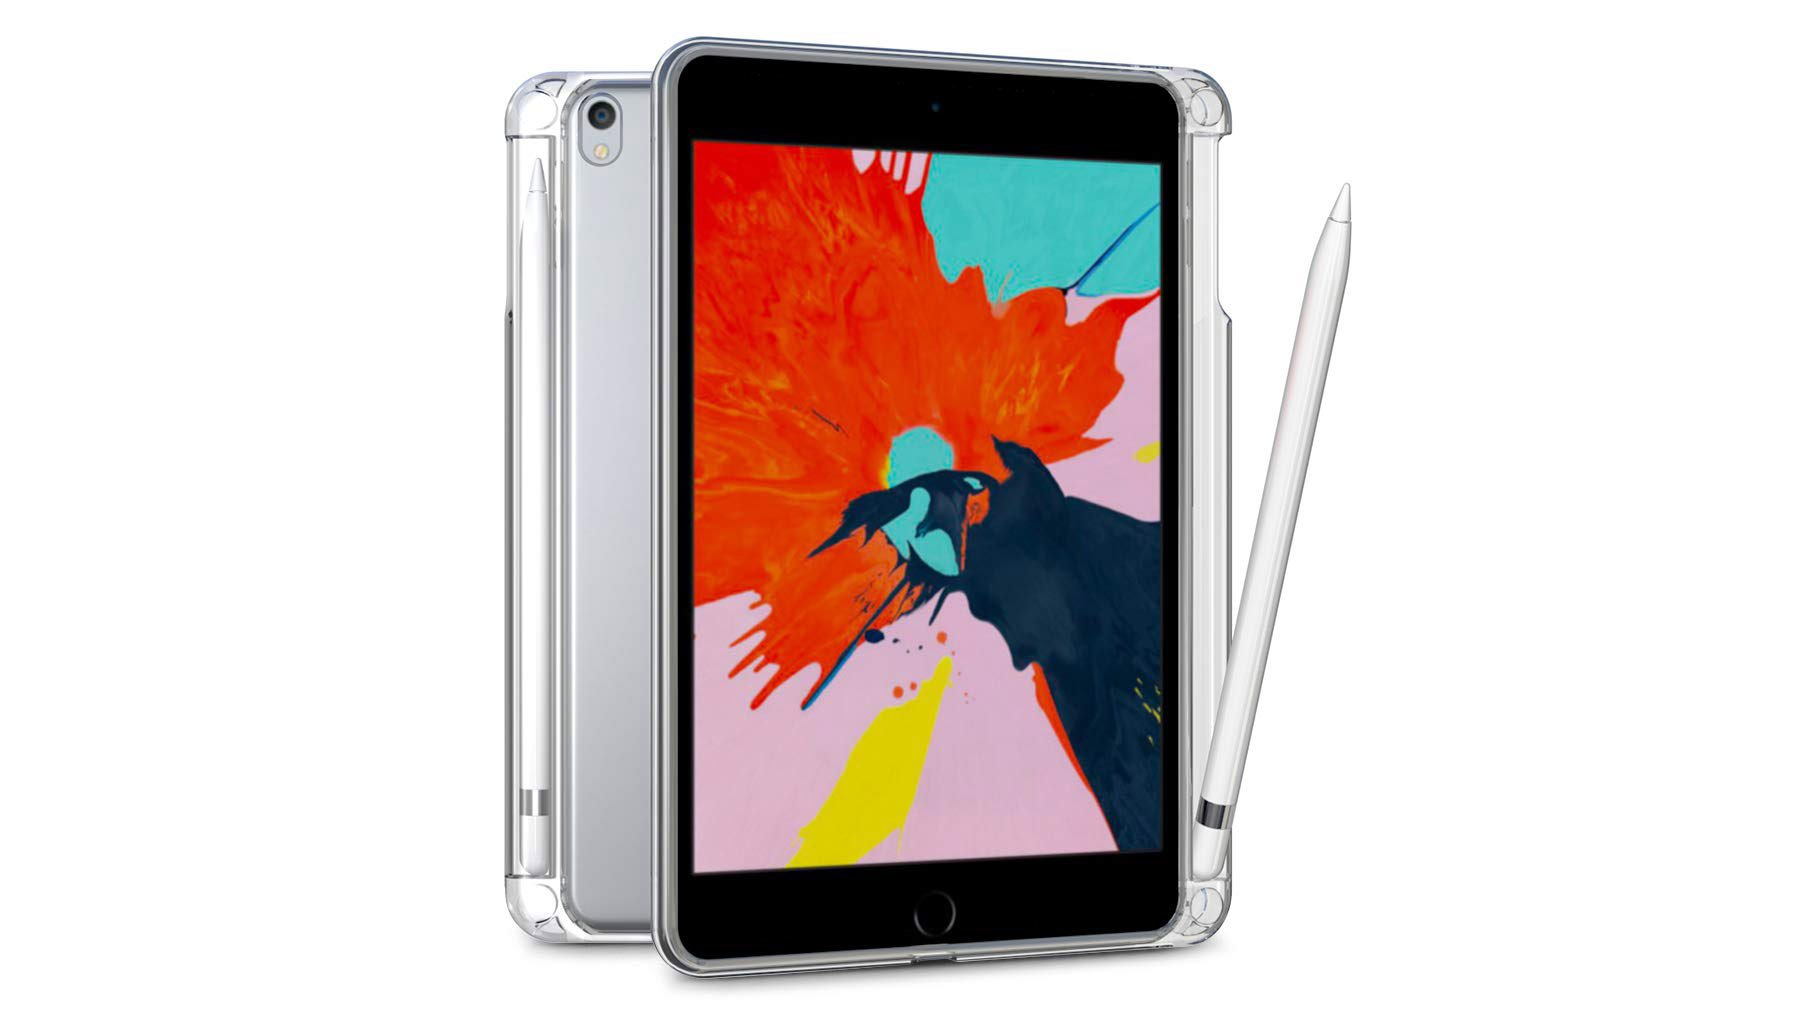 Best iPad Air 3 cases: Ideal cases for style, drop-proofing